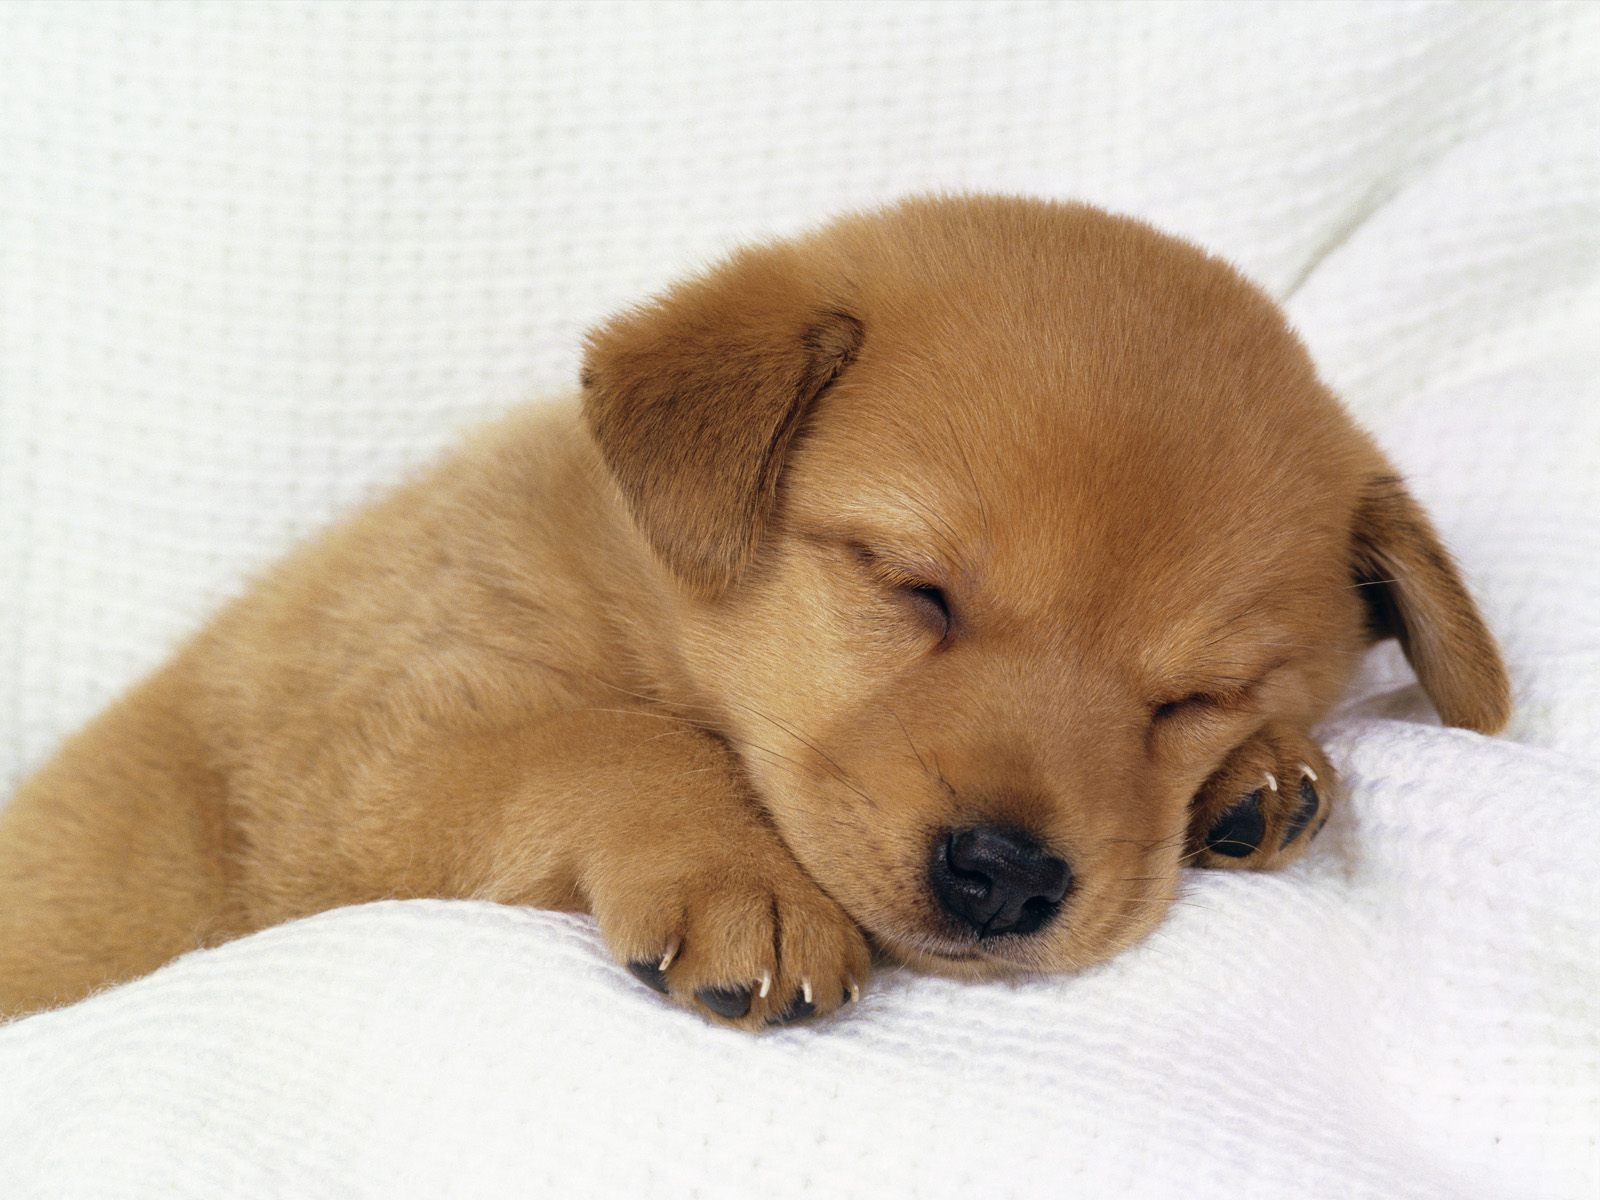 Cute Baby Puppies Wallpapers Top Free Cute Baby Puppies Backgrounds Wallpaperaccess